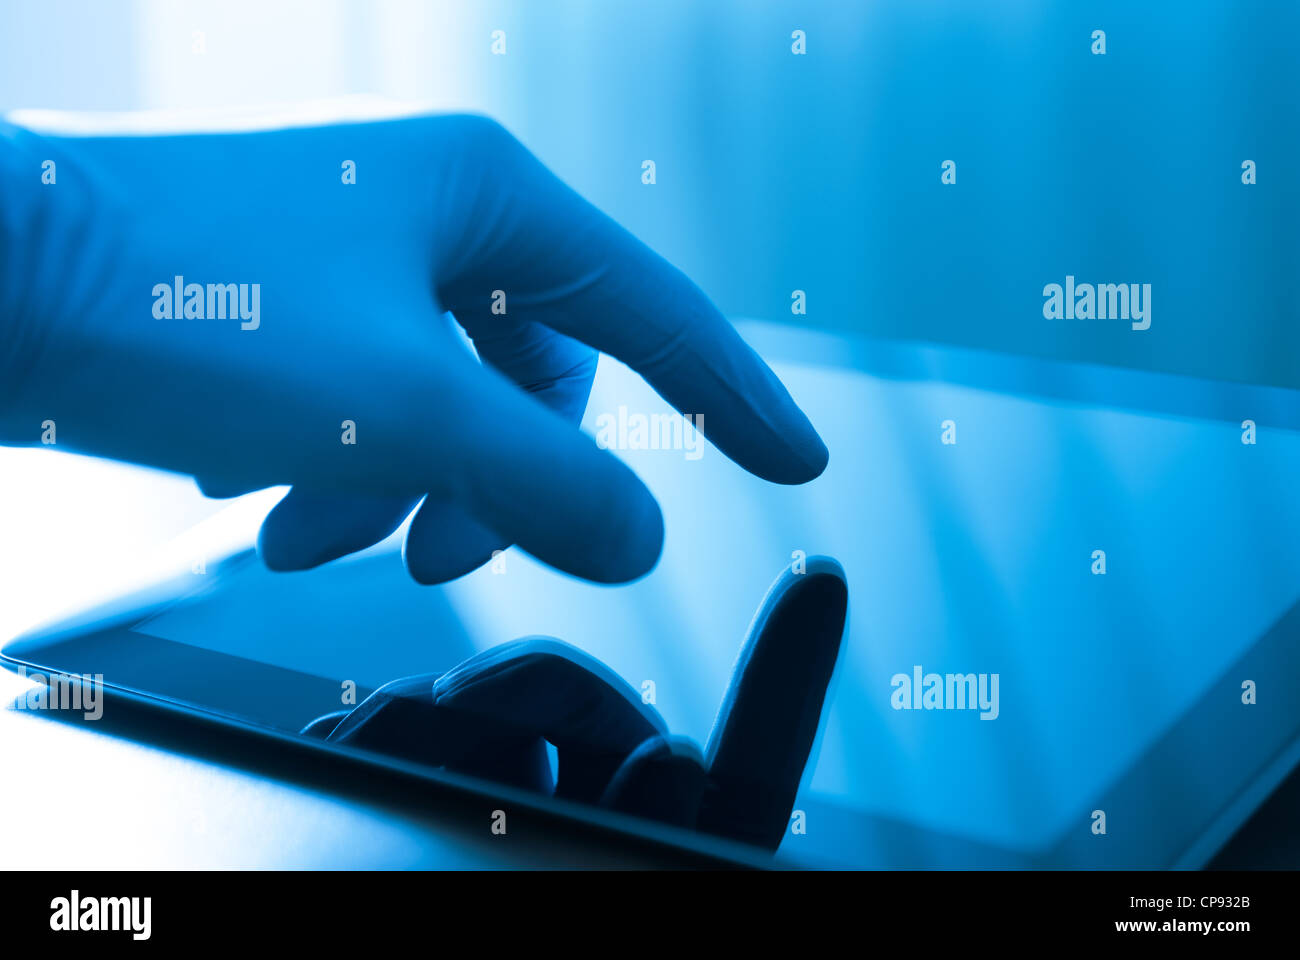 Hand in blue glove touching modern digital tablet. Concept image on medical or research theme. - Stock Image